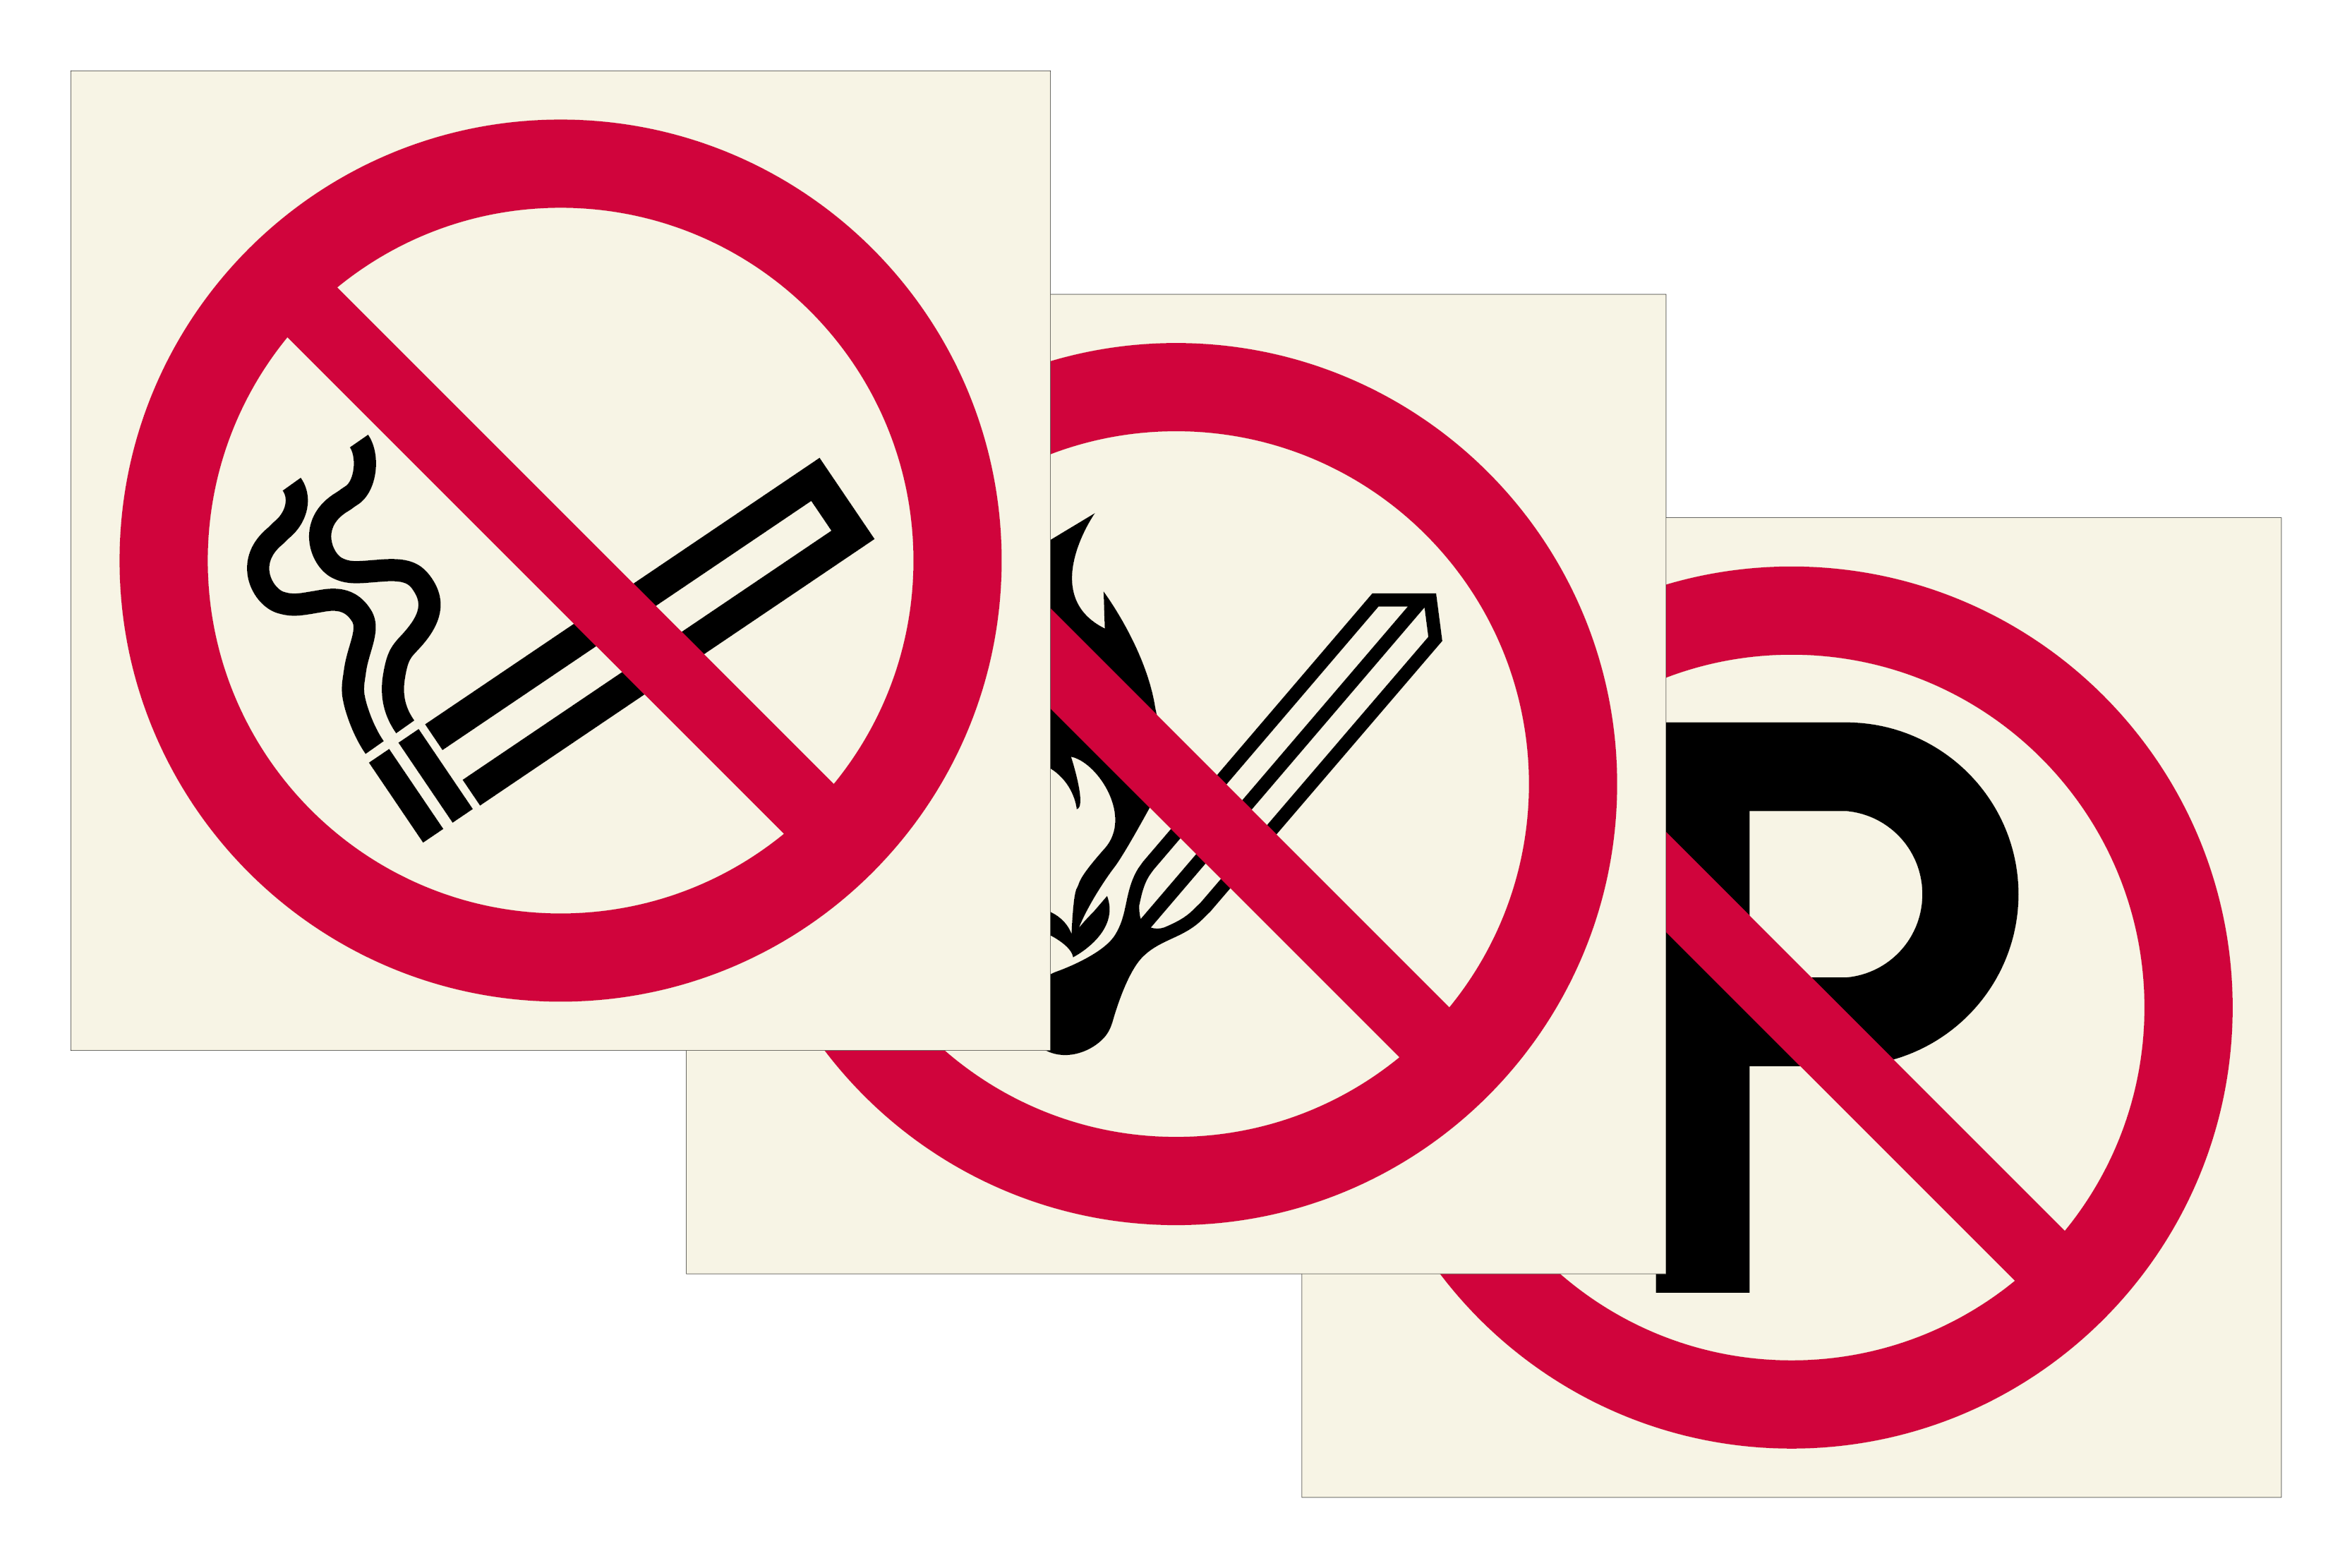 Prohibition Signs Image